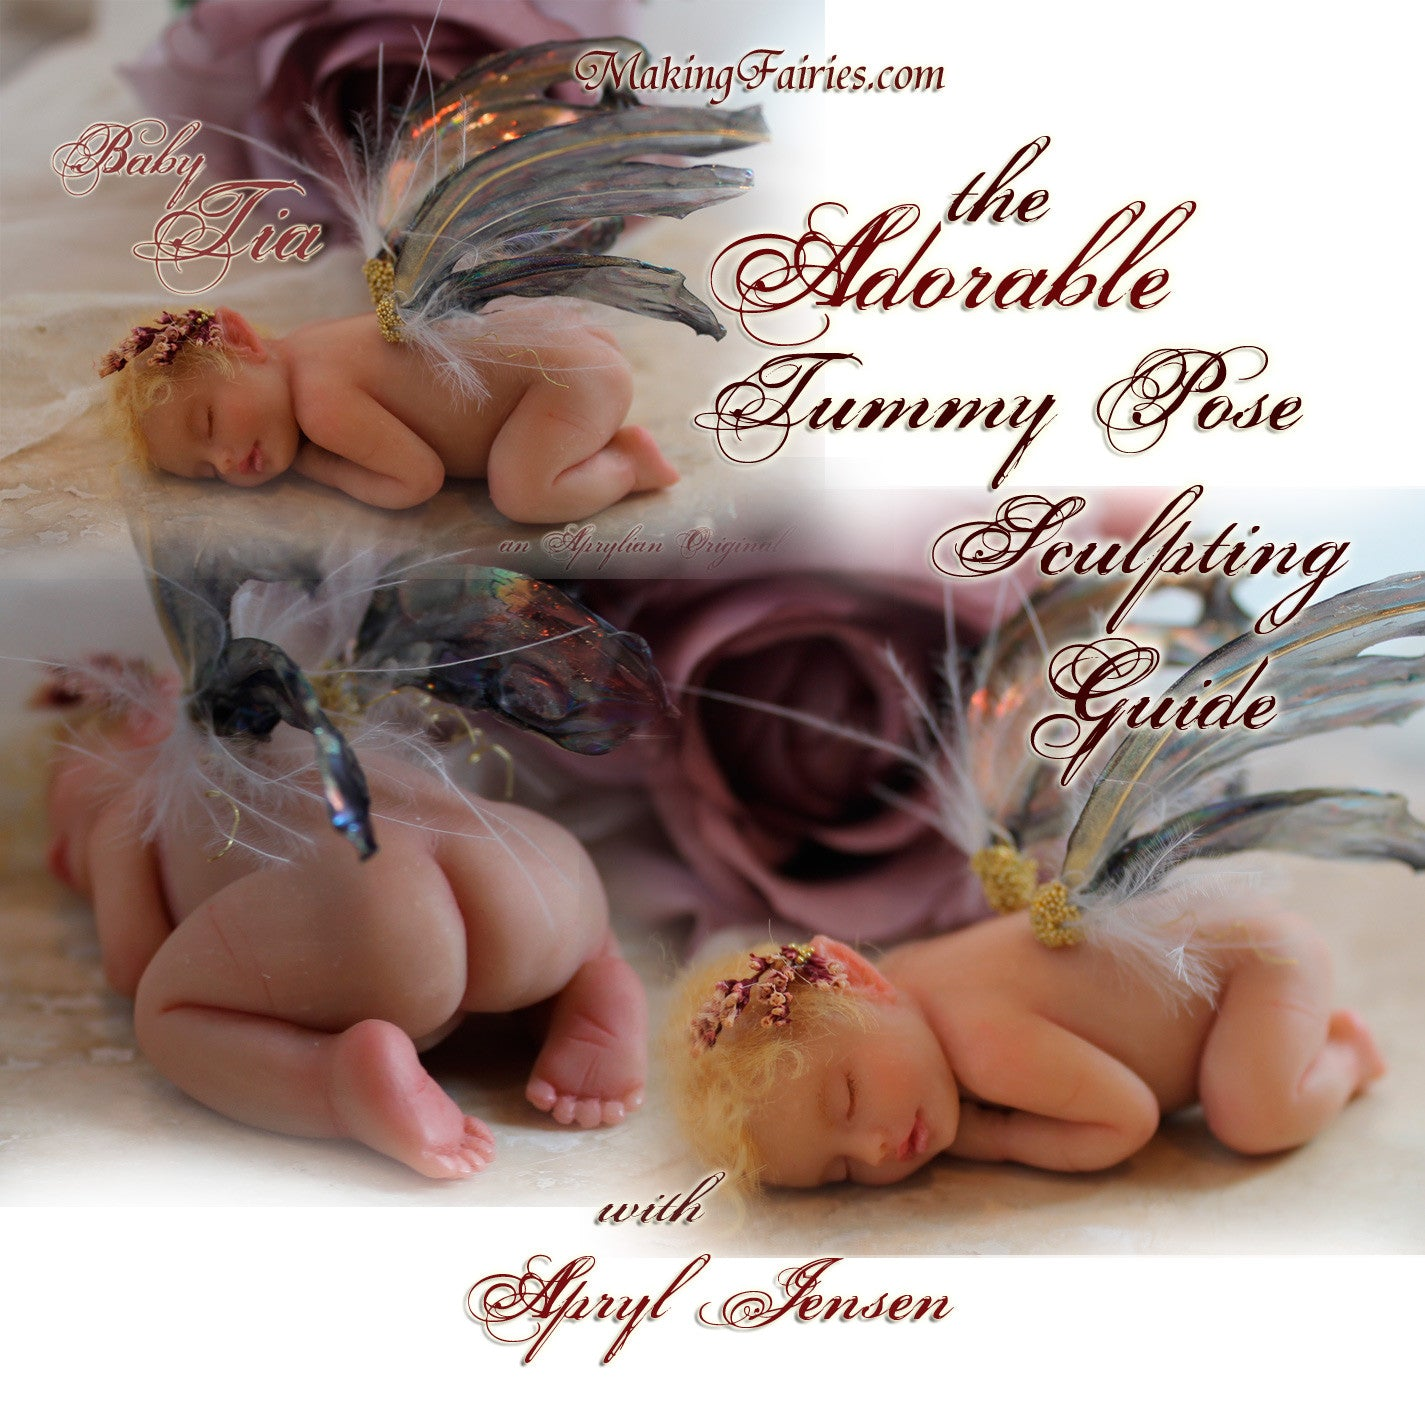 Tummy Pose Sculpting Guide PDF Booklet